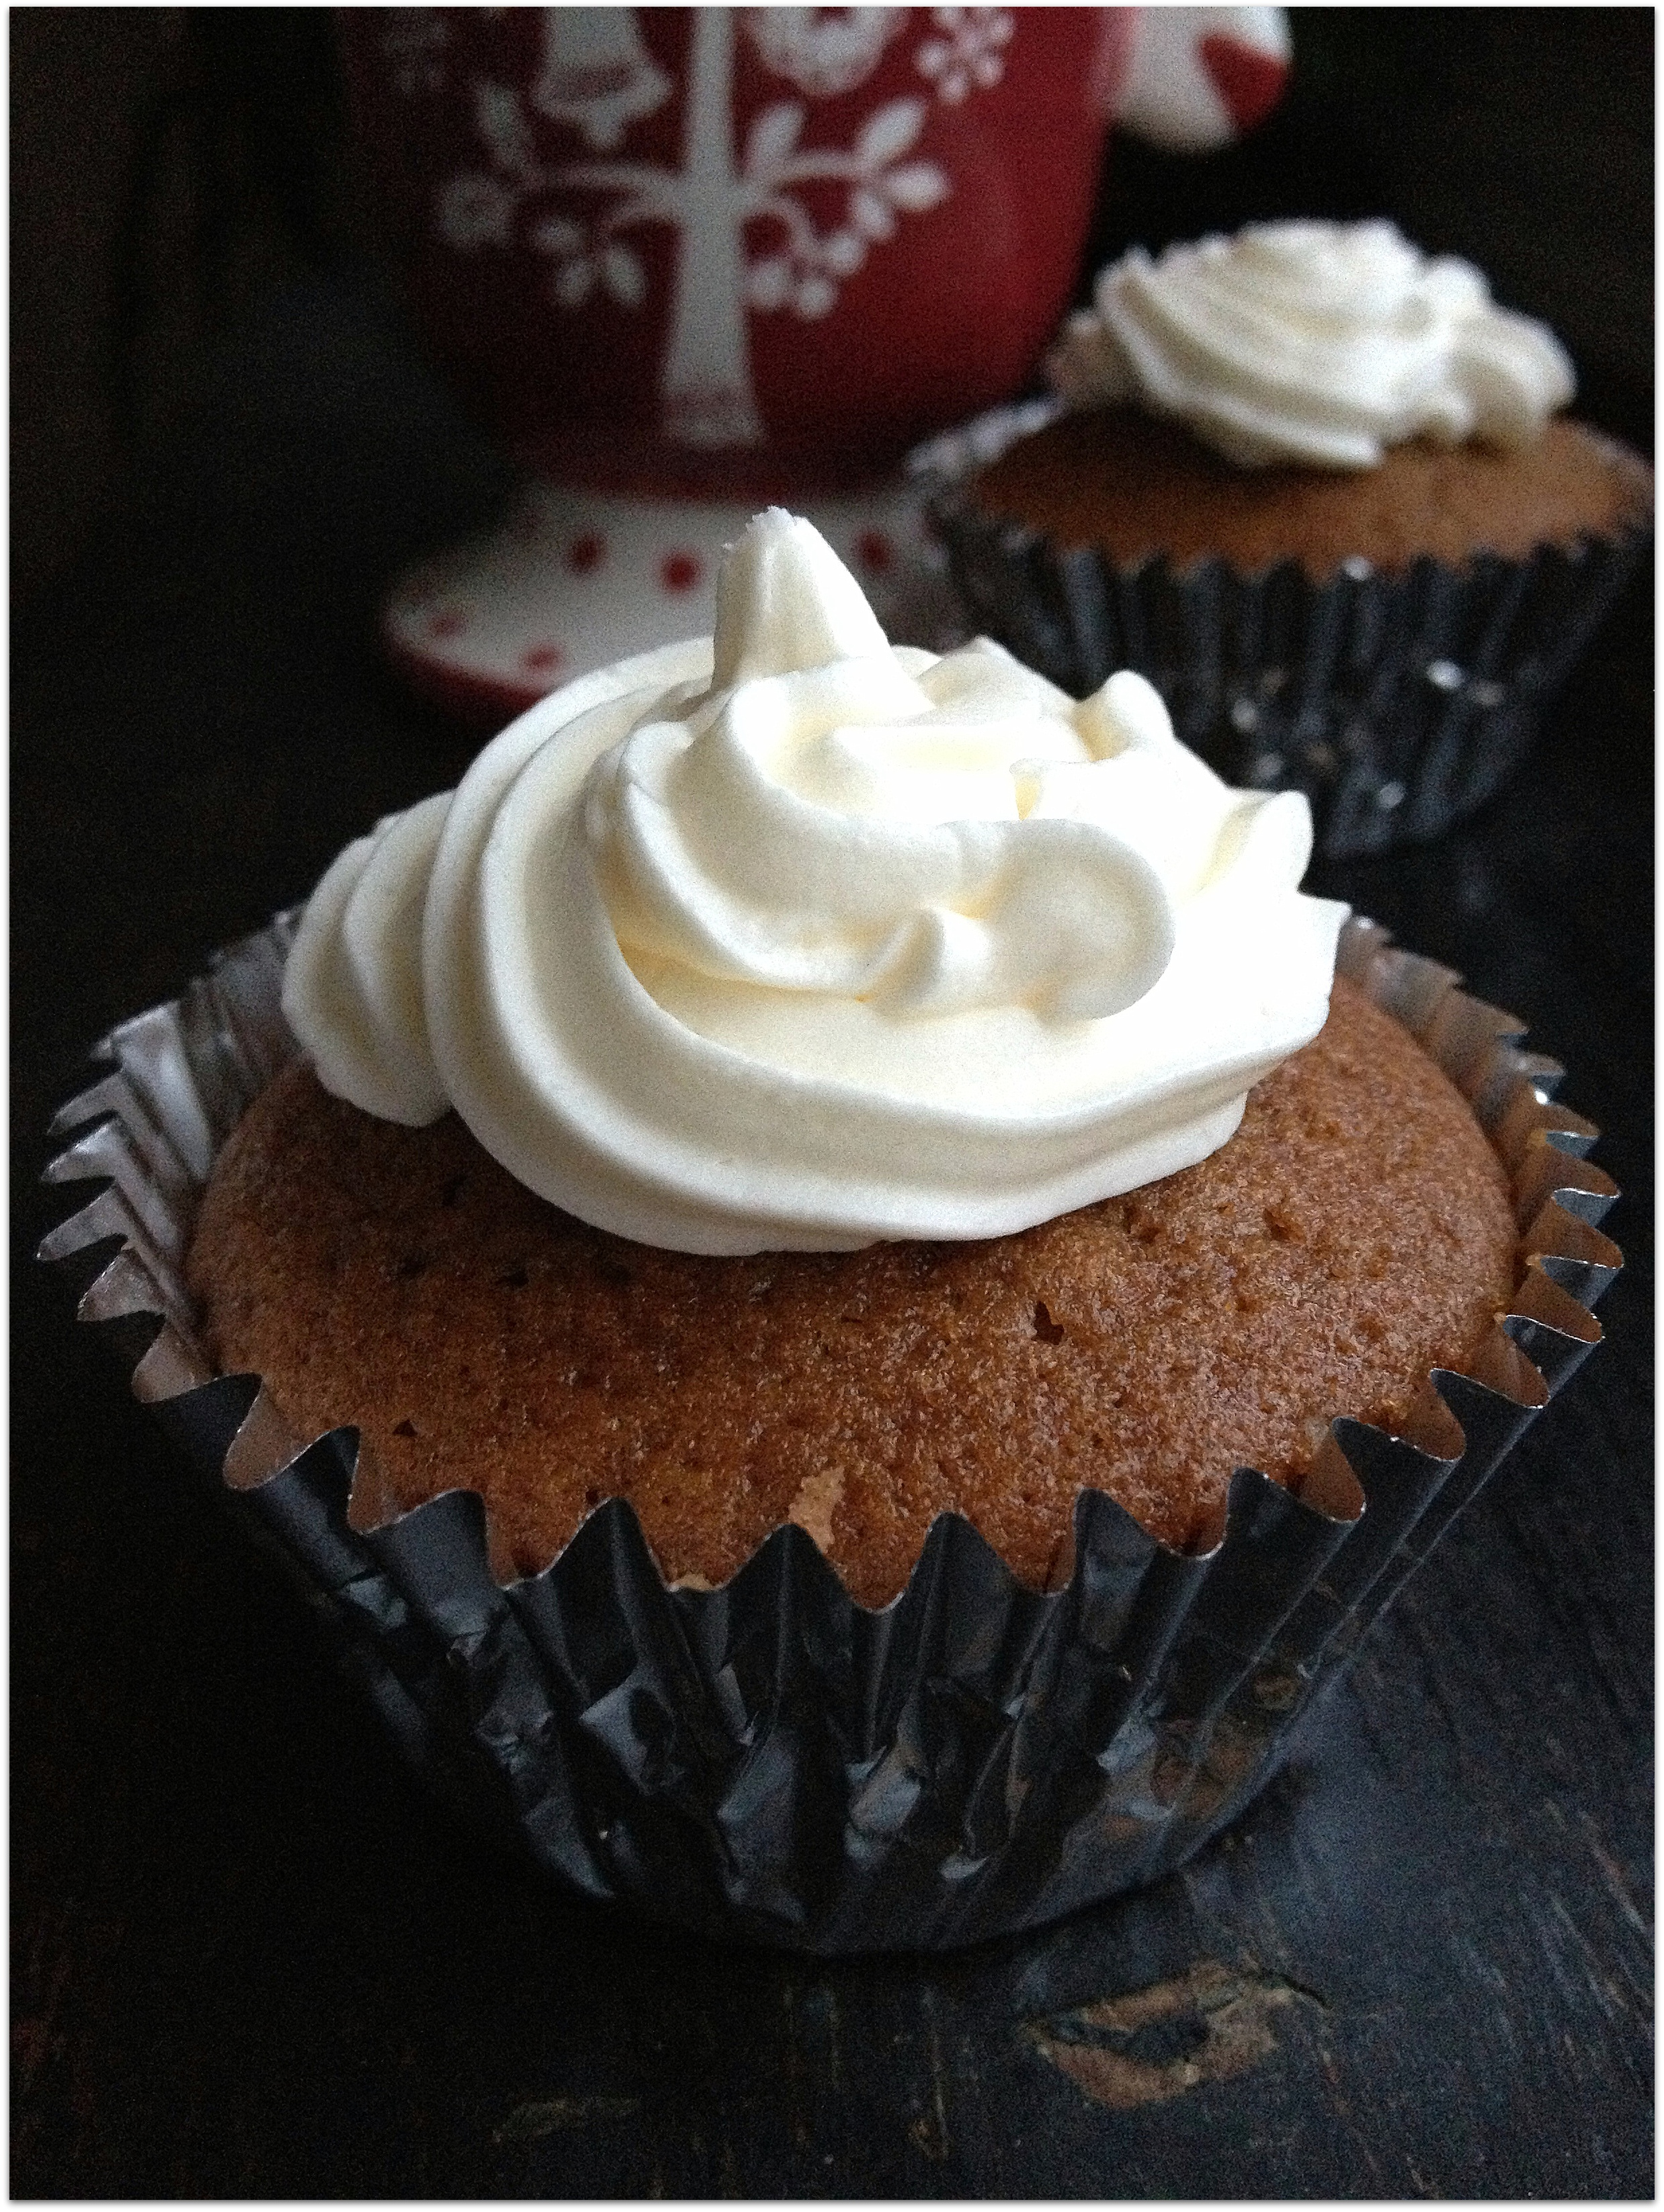 Hot Cocoa with Marshmallow Frosting Cupcakes